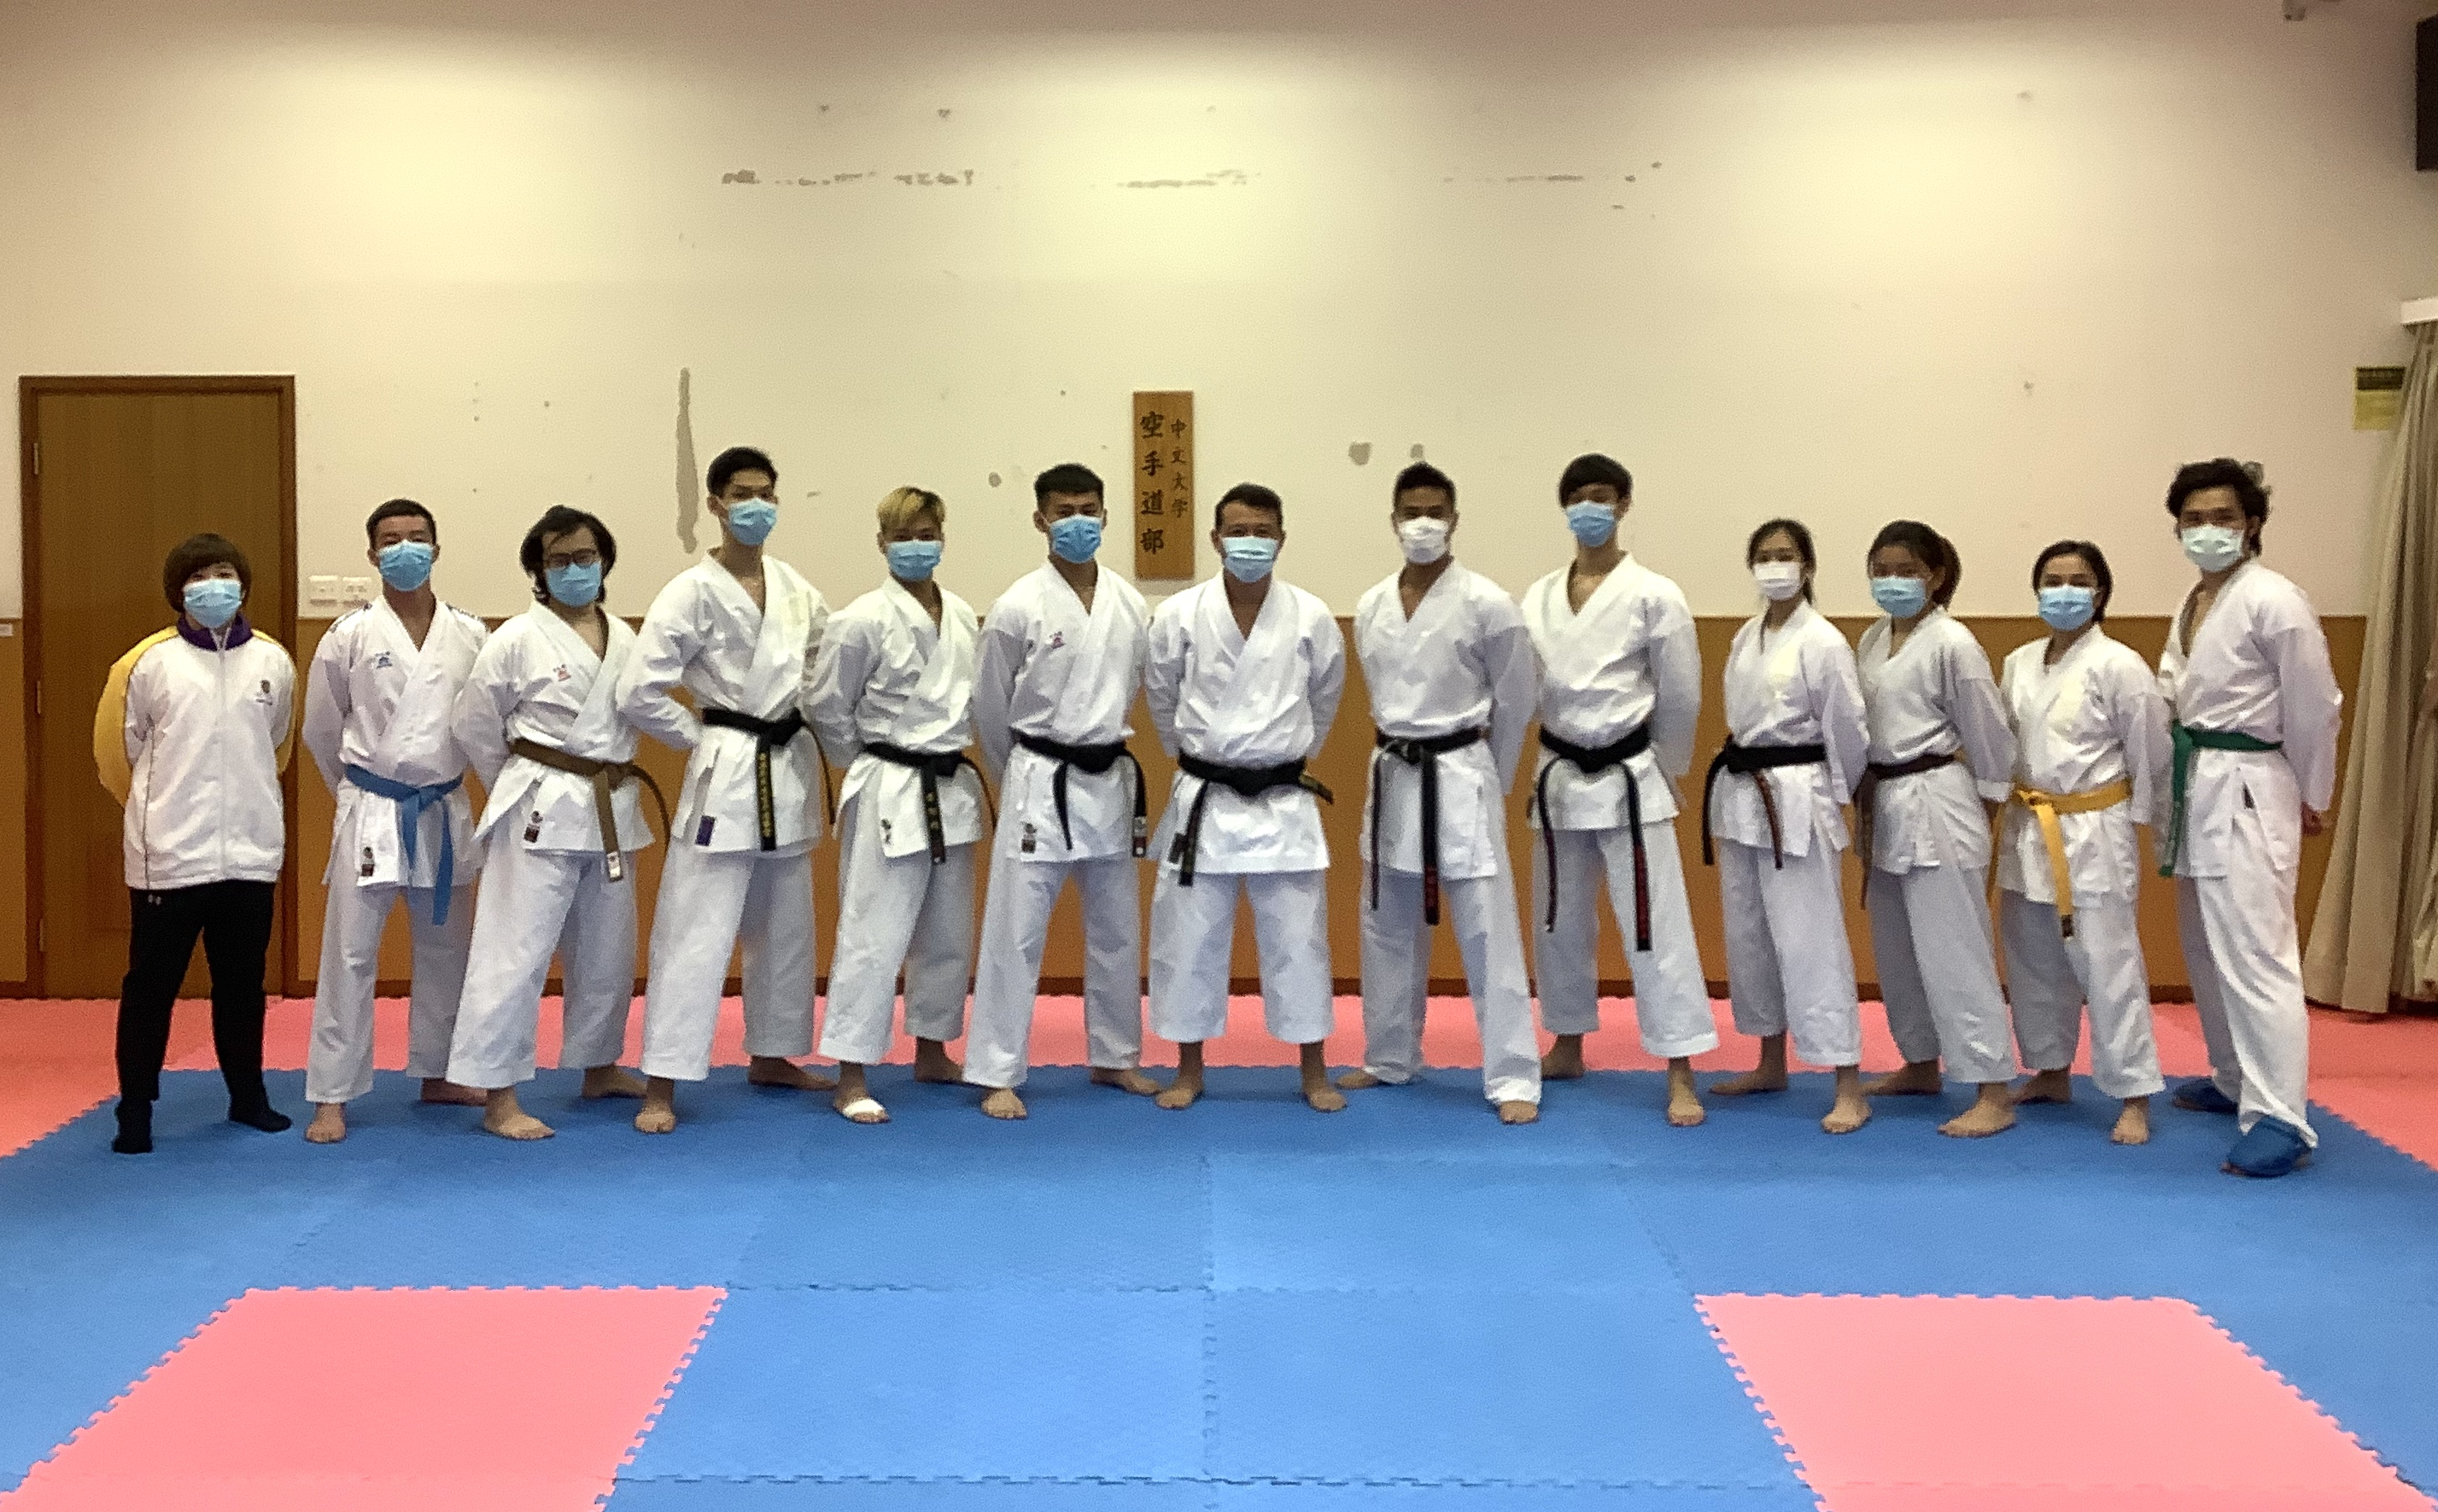 Karate boysgirls 2020 2021